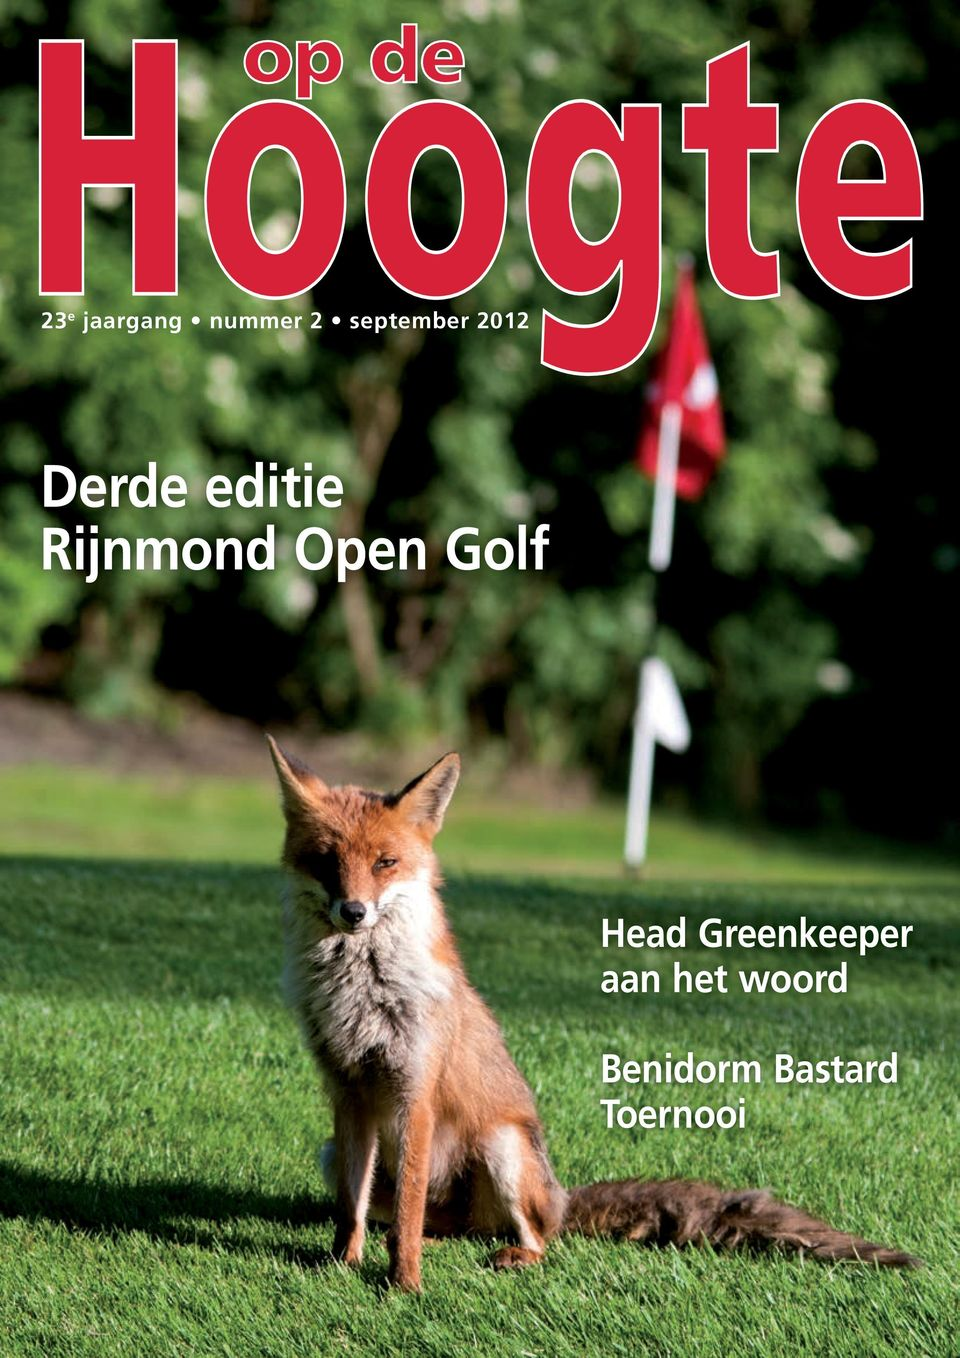 Rijnmond Open Golf Head